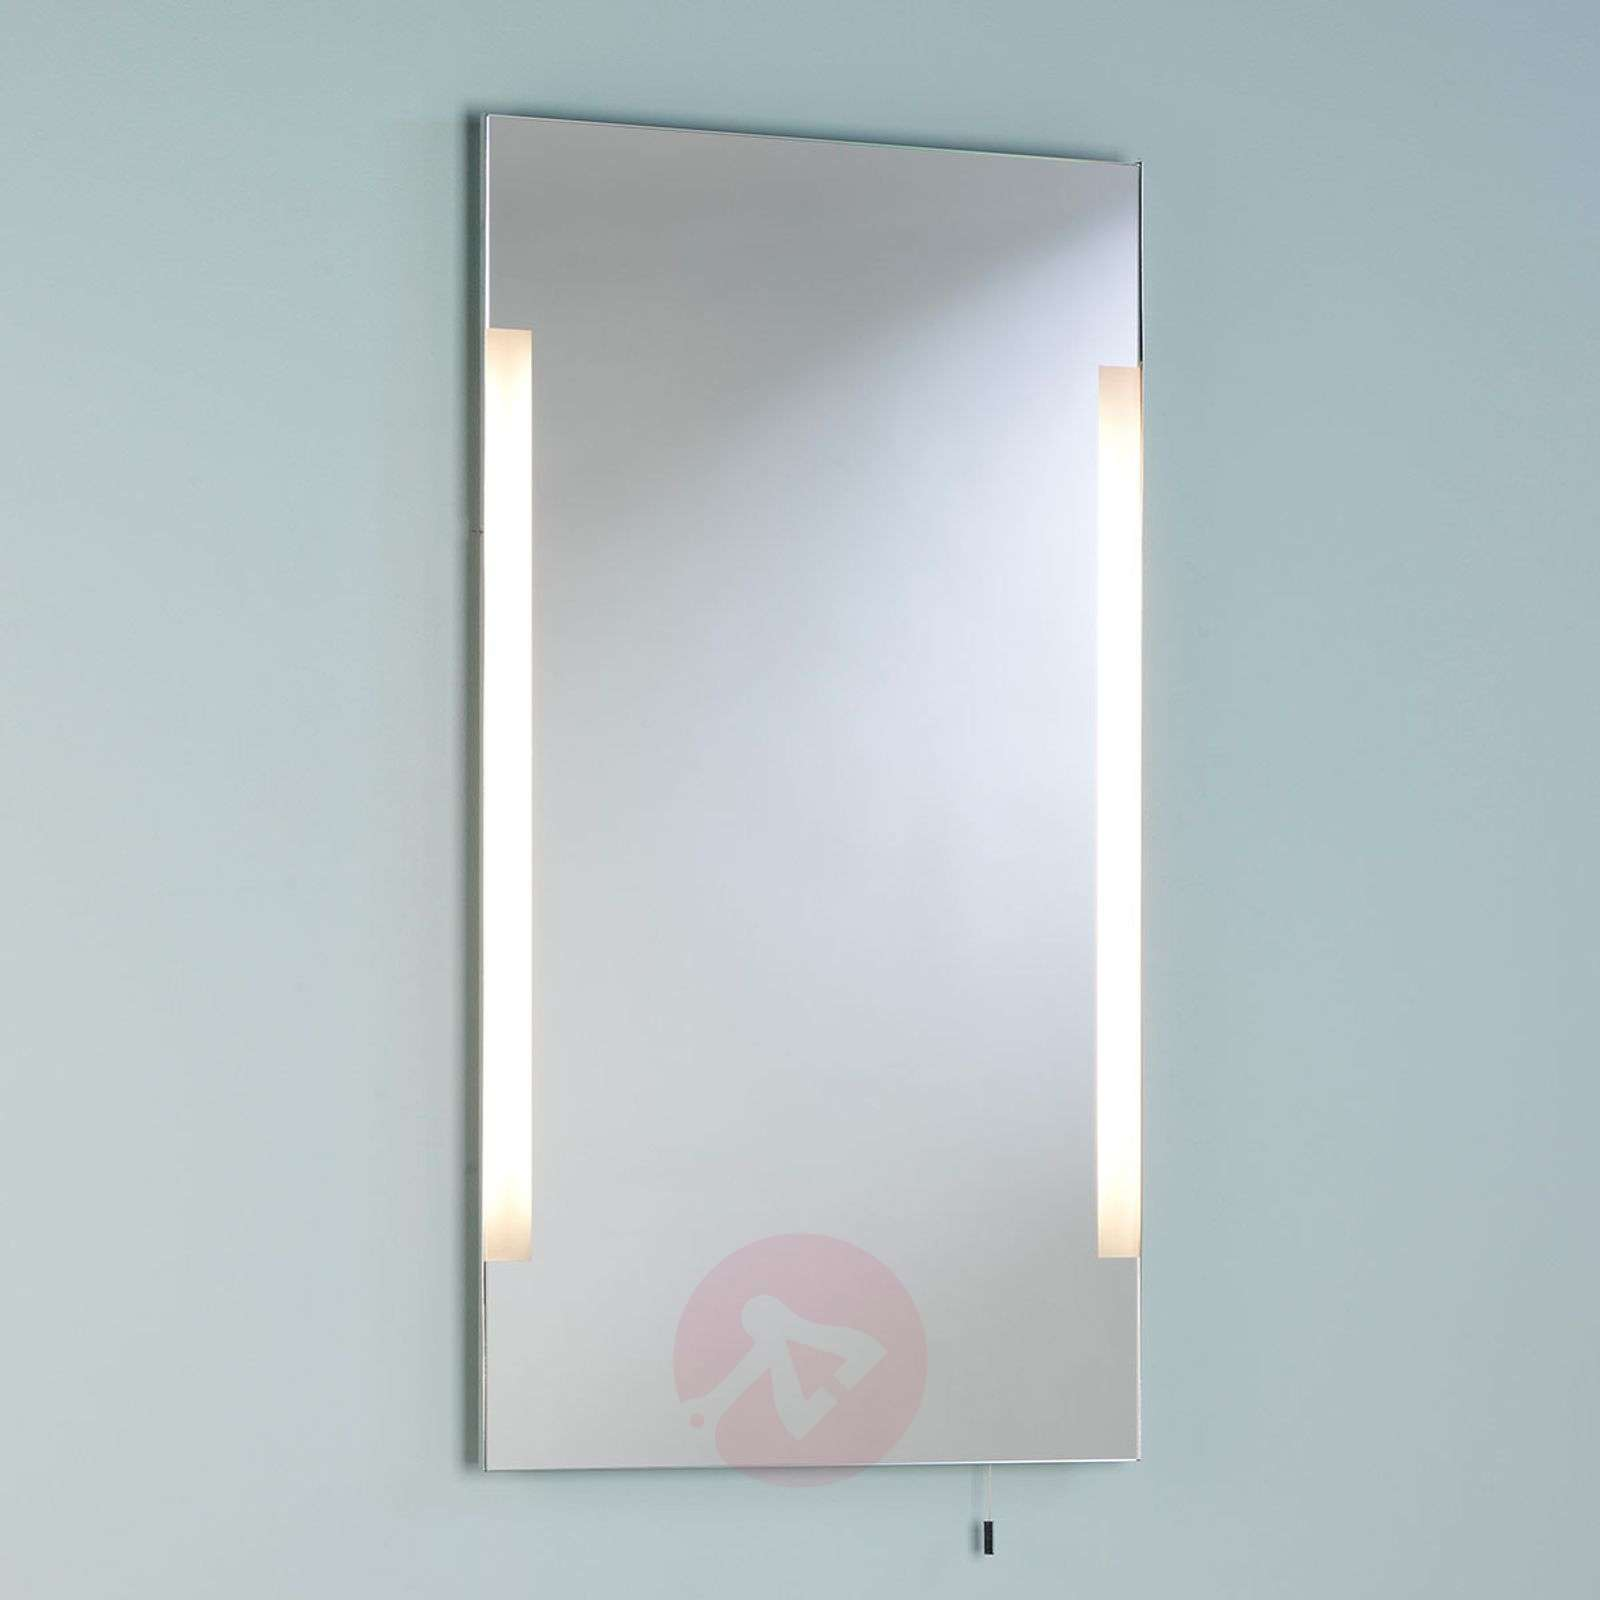 Imola 800 Wall Mirror with Integrated Lighting-1020060-02